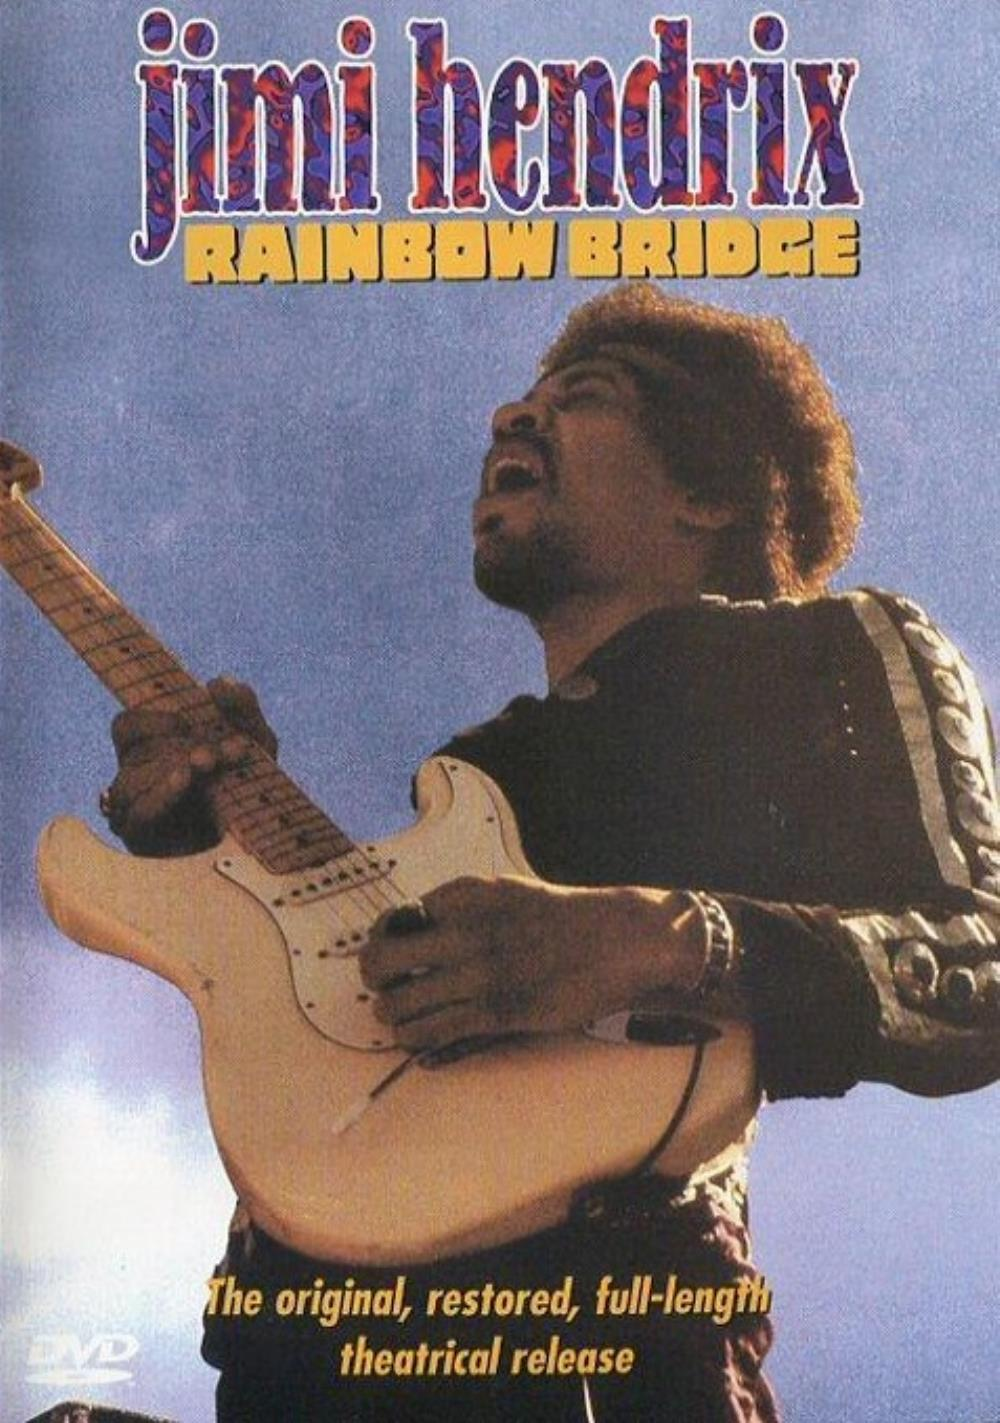 Jimi Hendrix - Rainbow Bridge CD (album) cover